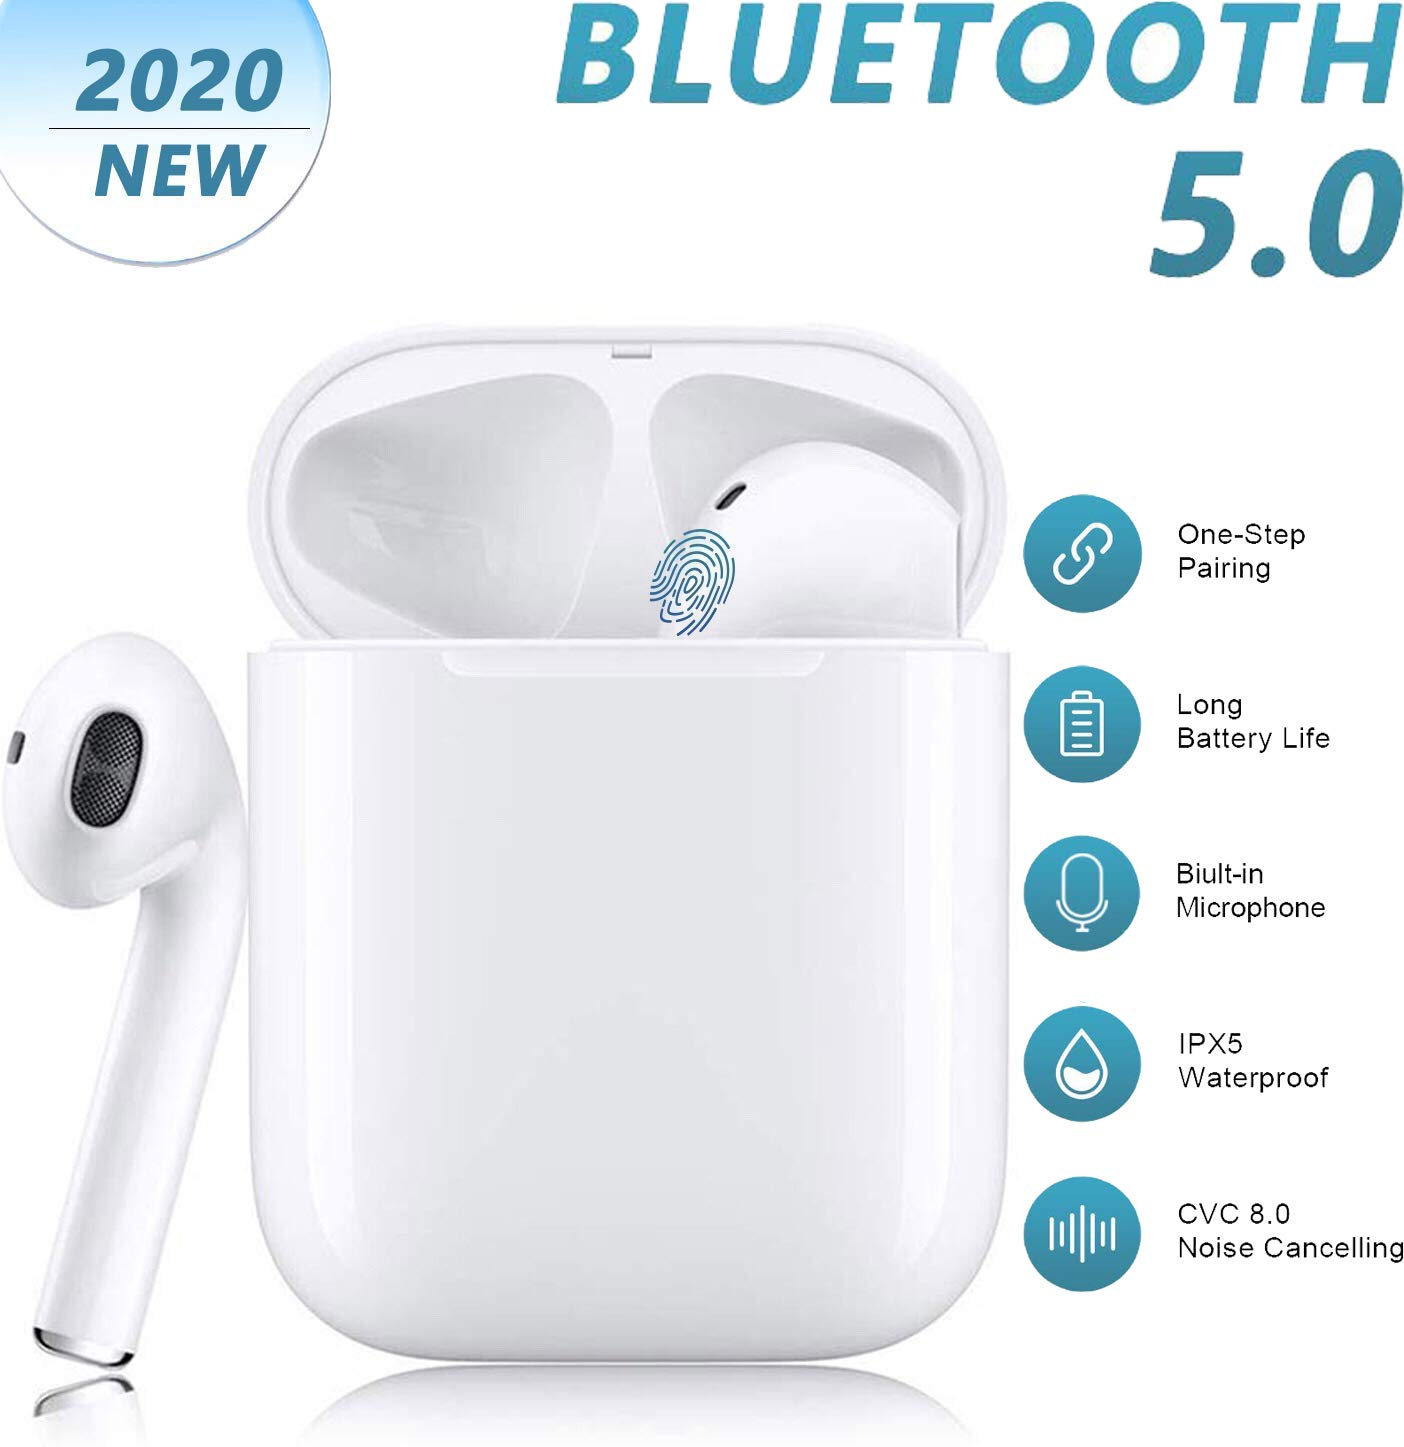 Bluetooth Wireless Earbuds Noise Canceling 3D Stereo with【24Hrs Fast Charging Case】IPX5 Waterproof Pop-ups Auto Pairing Sports Headphones in-Ear Built-in Mic Headset,for Airpods iPhone Apple